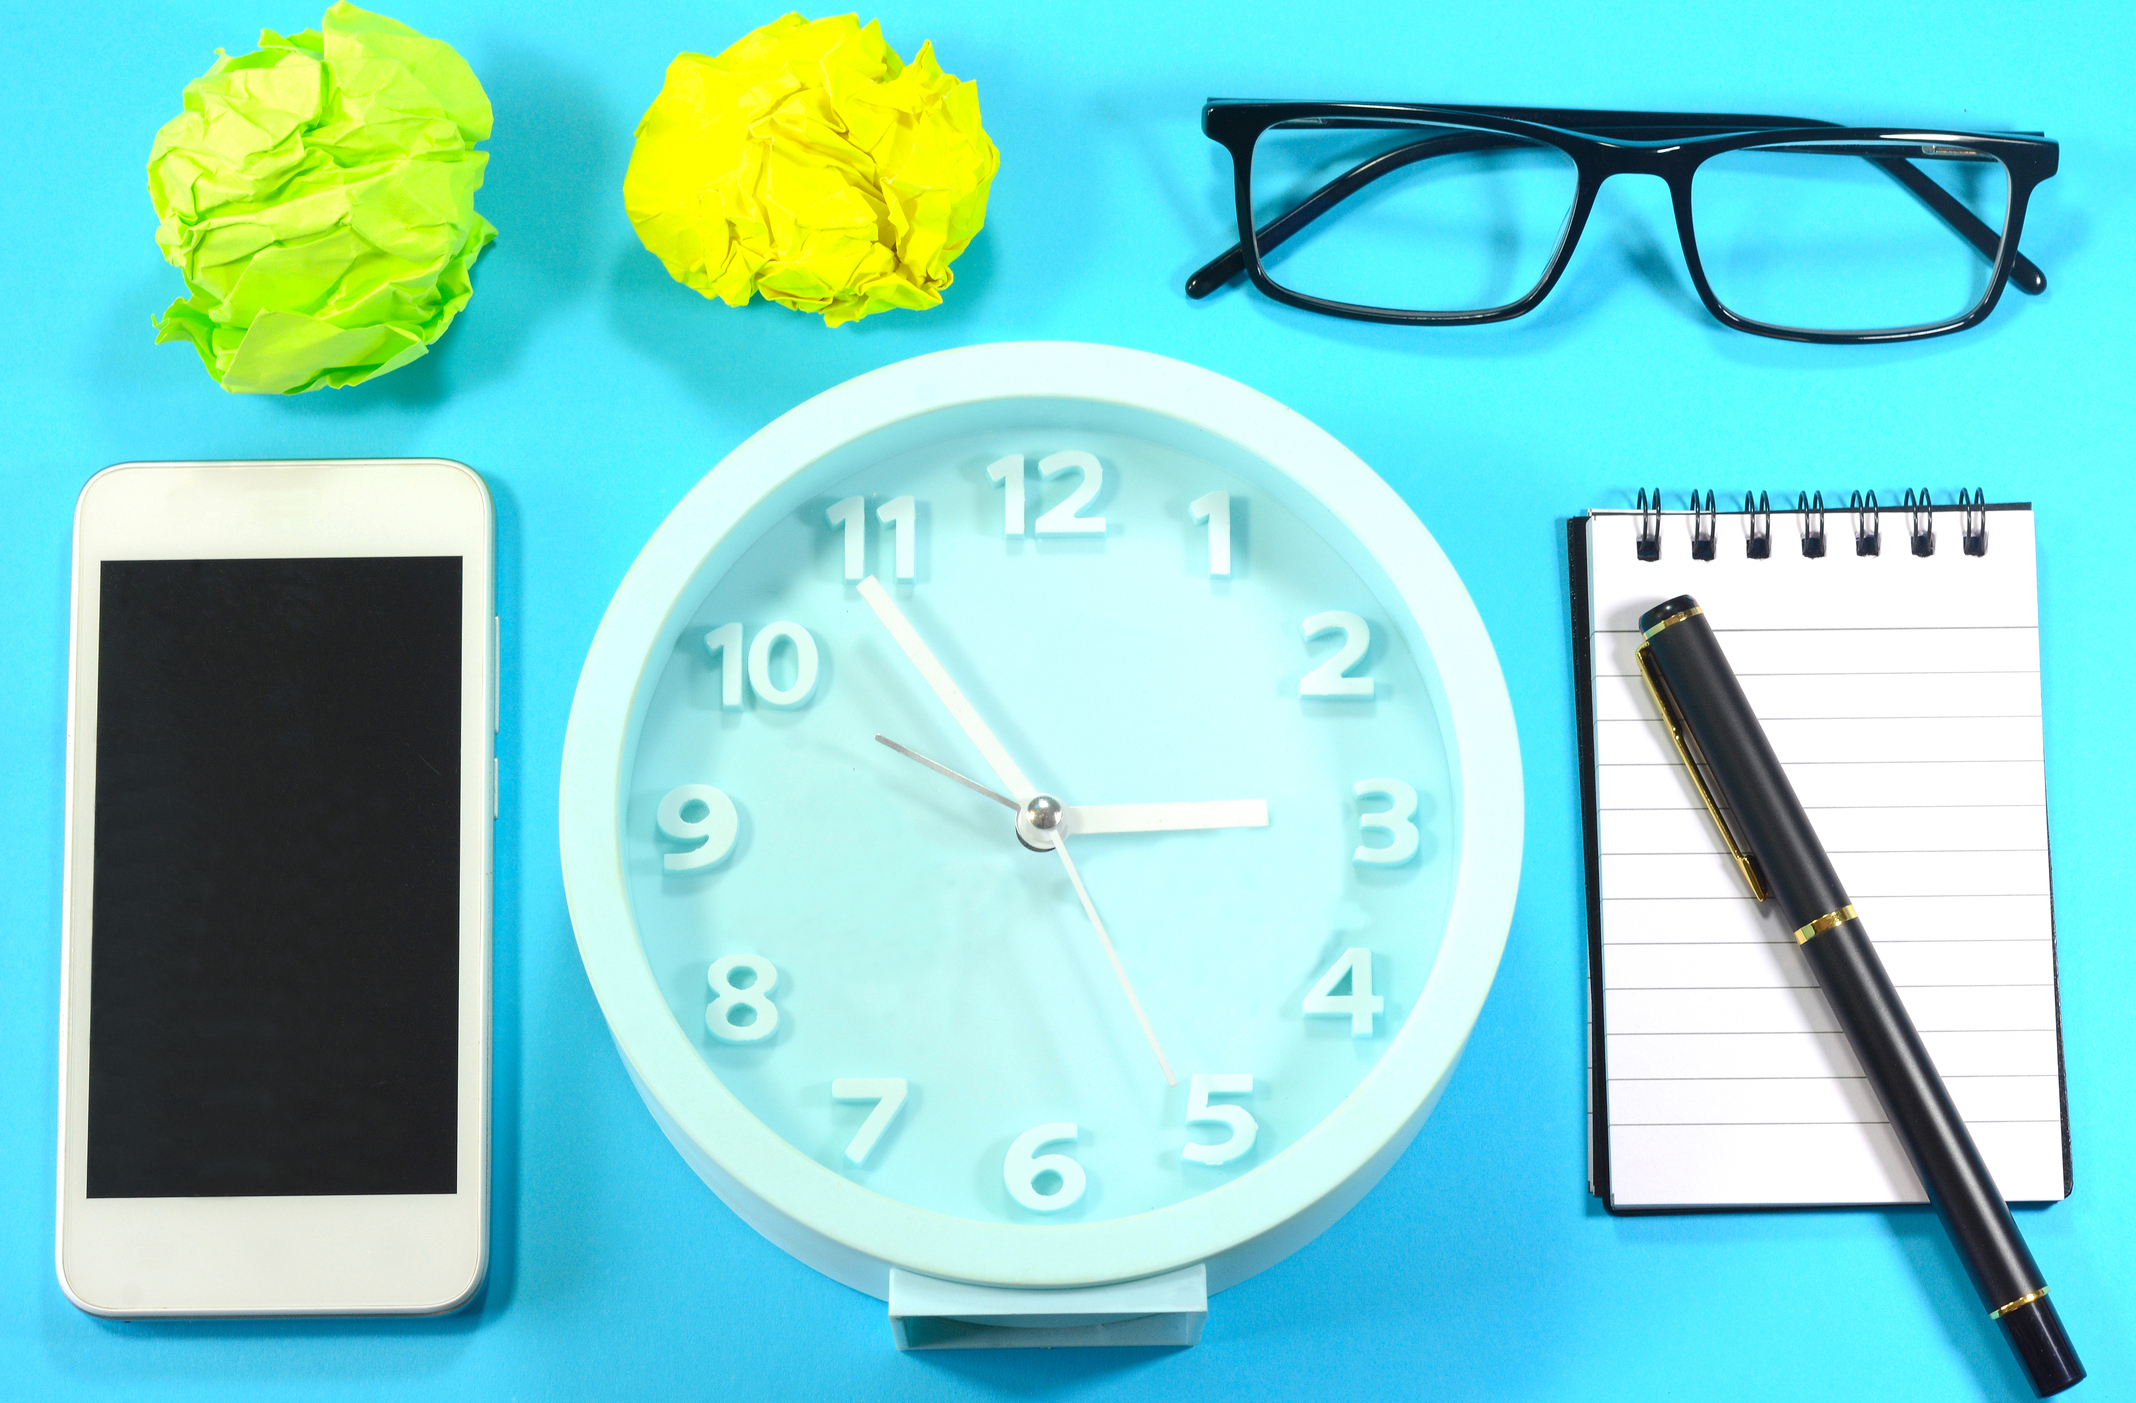 A Study of Efficiency in Workplaces Suggests That in a Normal 8 Hour Day We Only Do About 3 Hours Useful Work